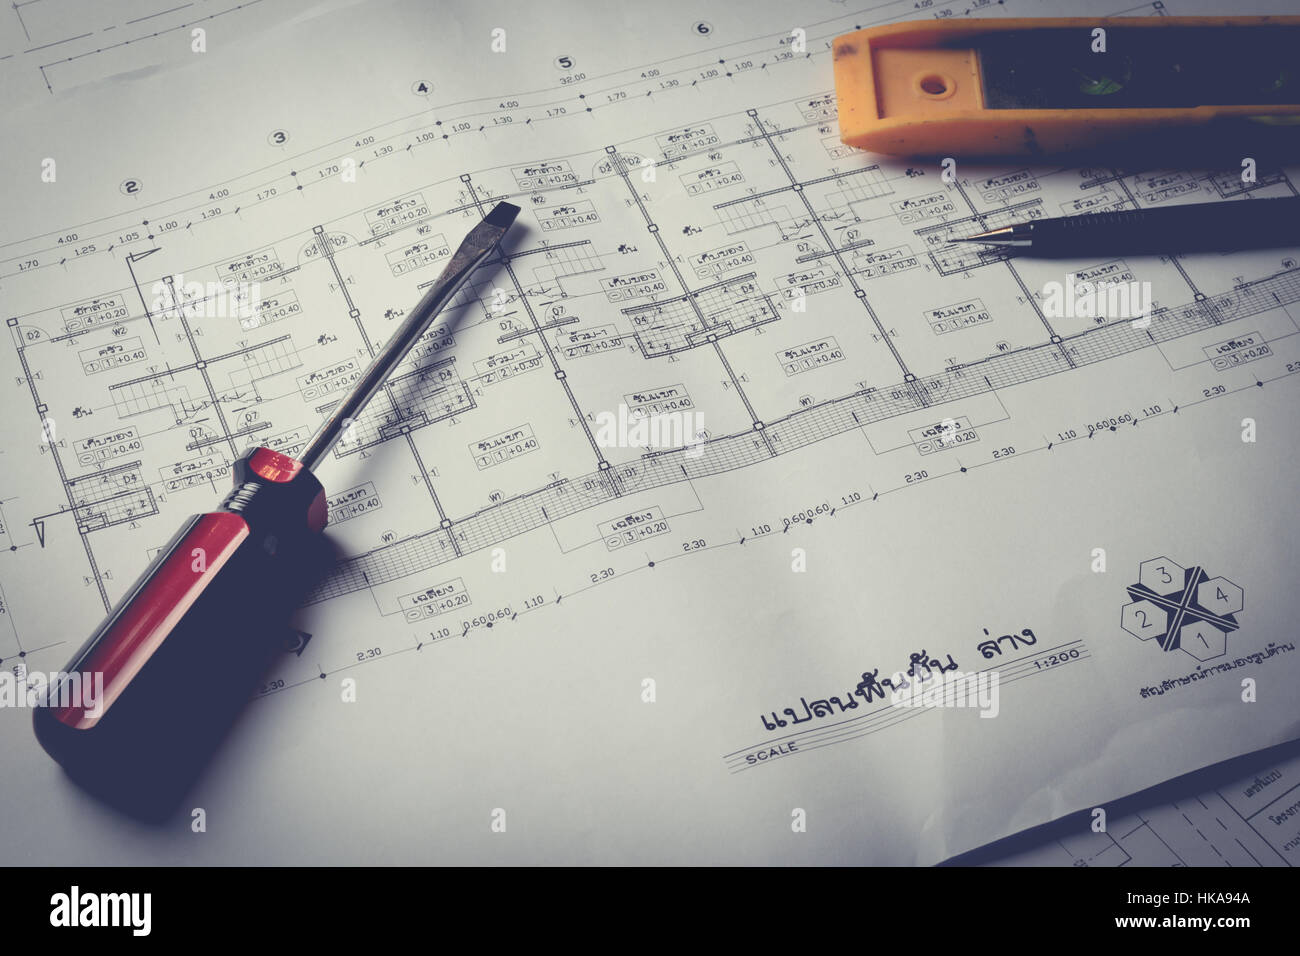 Engineering diagram blueprint paper drafting project sketch stock engineering diagram blueprint paper drafting project sketch architecturalselective focusvintage filter malvernweather Image collections